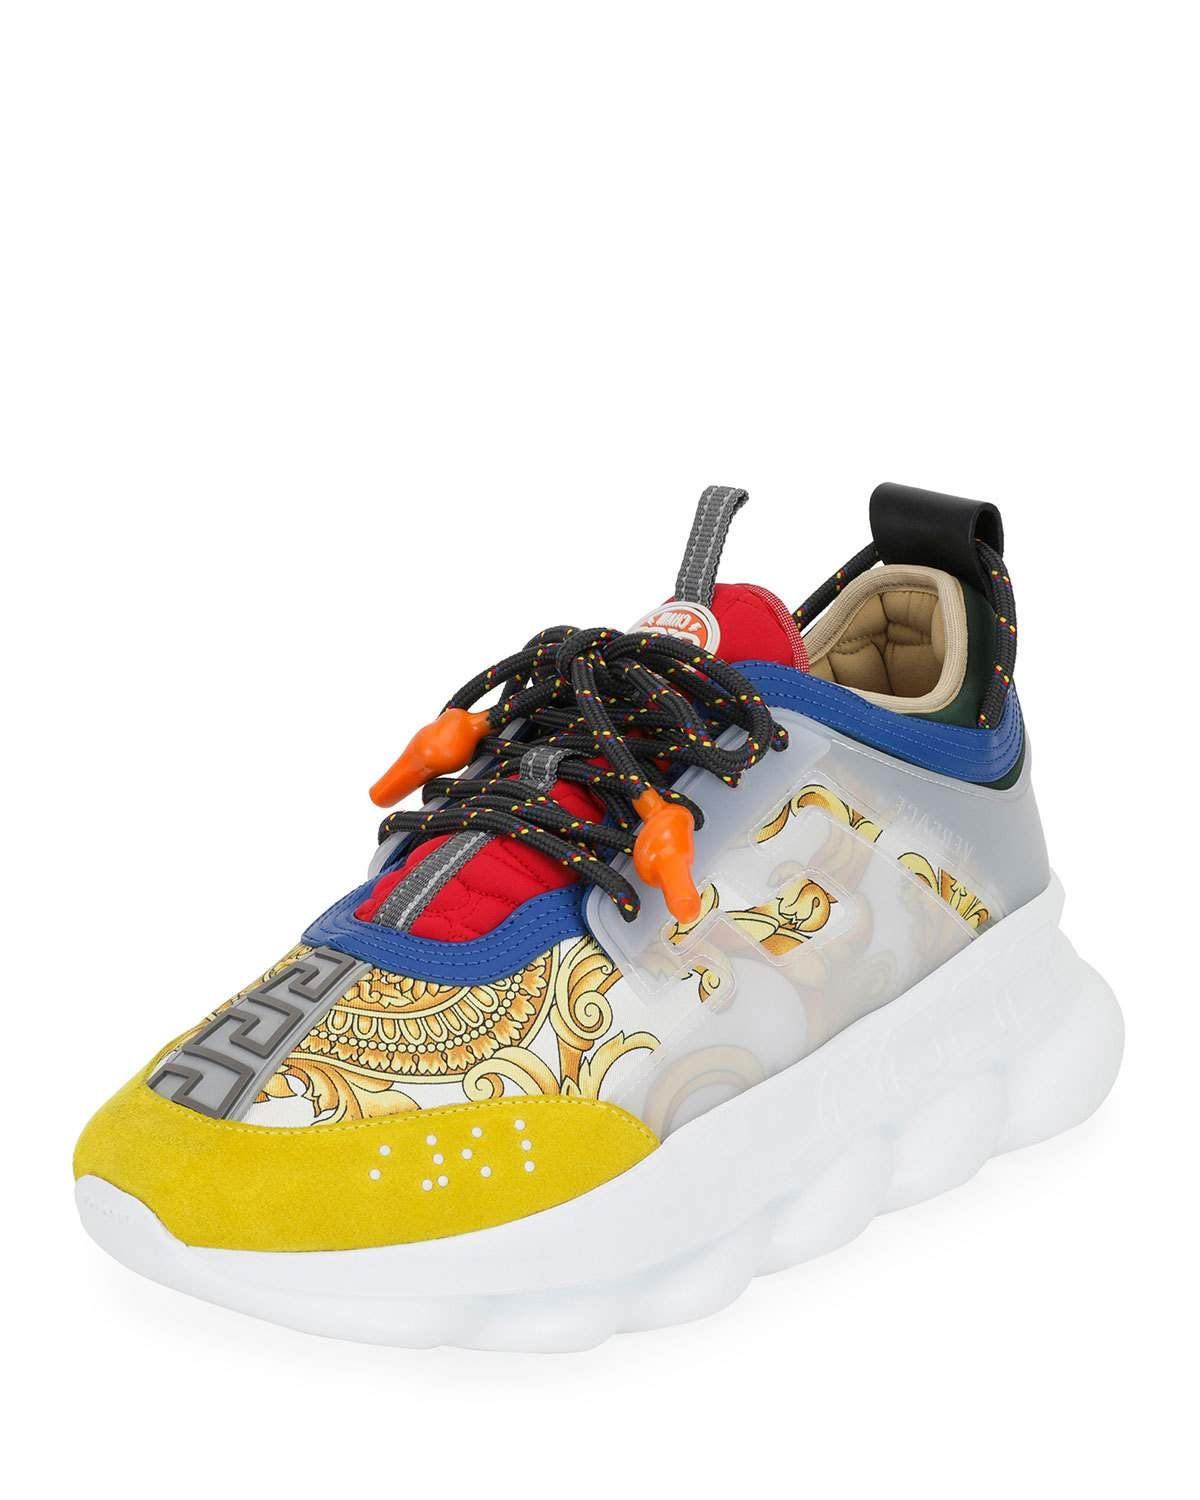 efa25a8d4 VERSACE MEN'S TRIBUTE CHAIN REACTION GREEK-KEY SNEAKERSMEN'S CHAIN REACTION  SNEAKERS. #versace #